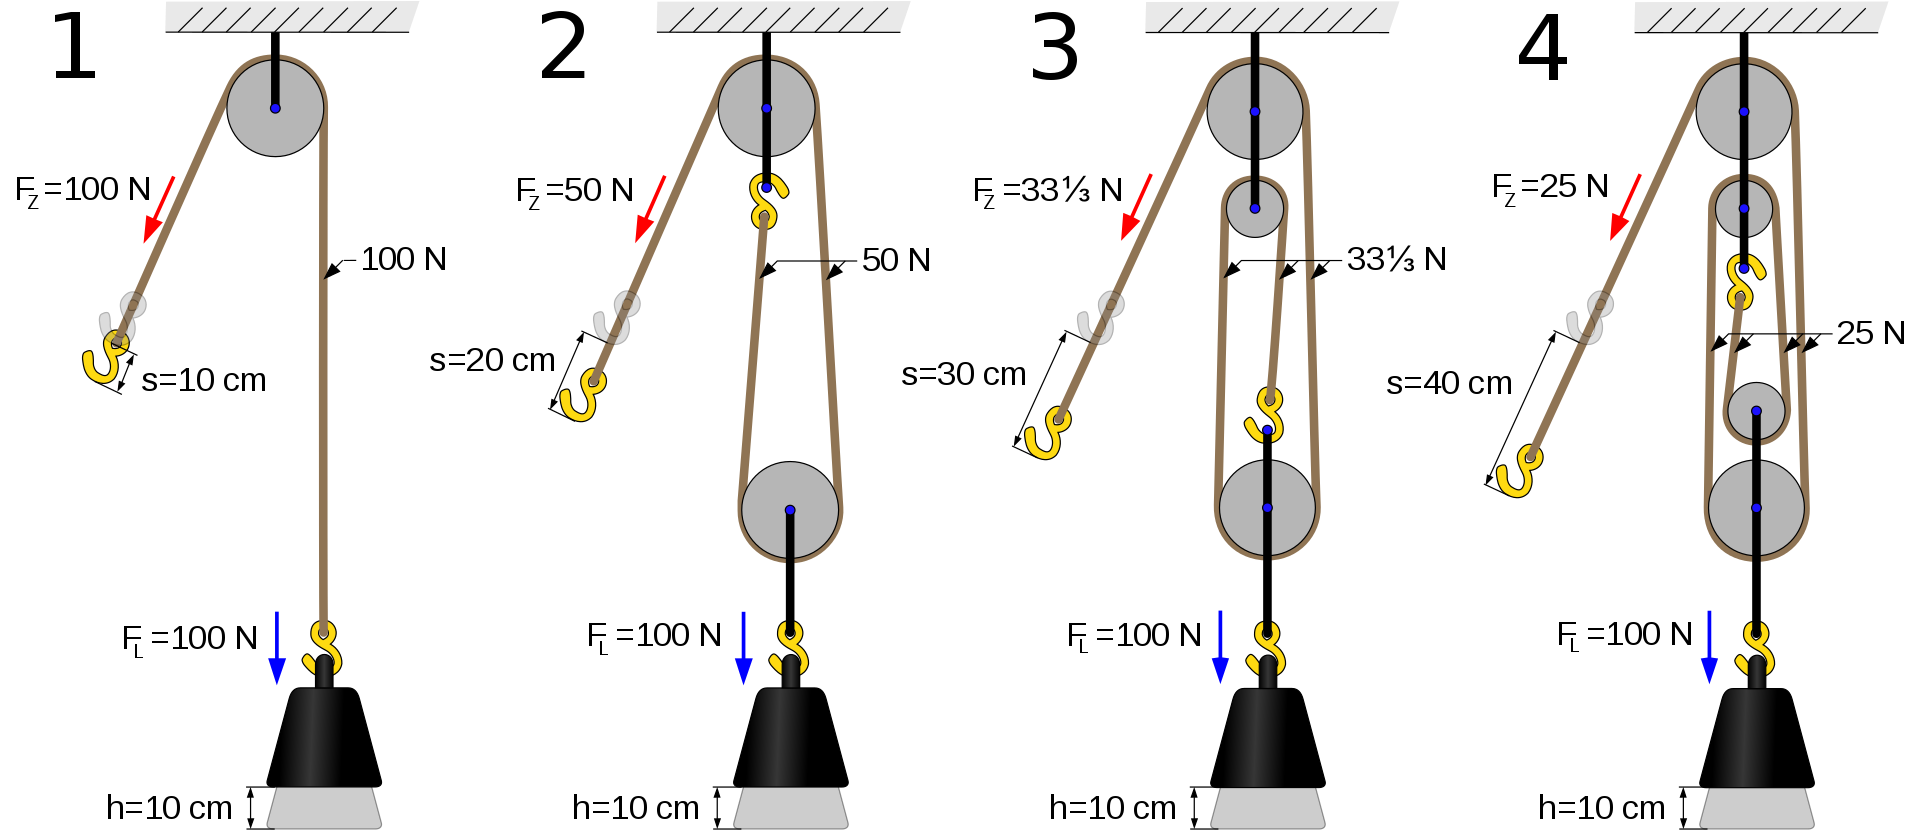 Examples of rope and pulley systems illustrating mechanical advantage.